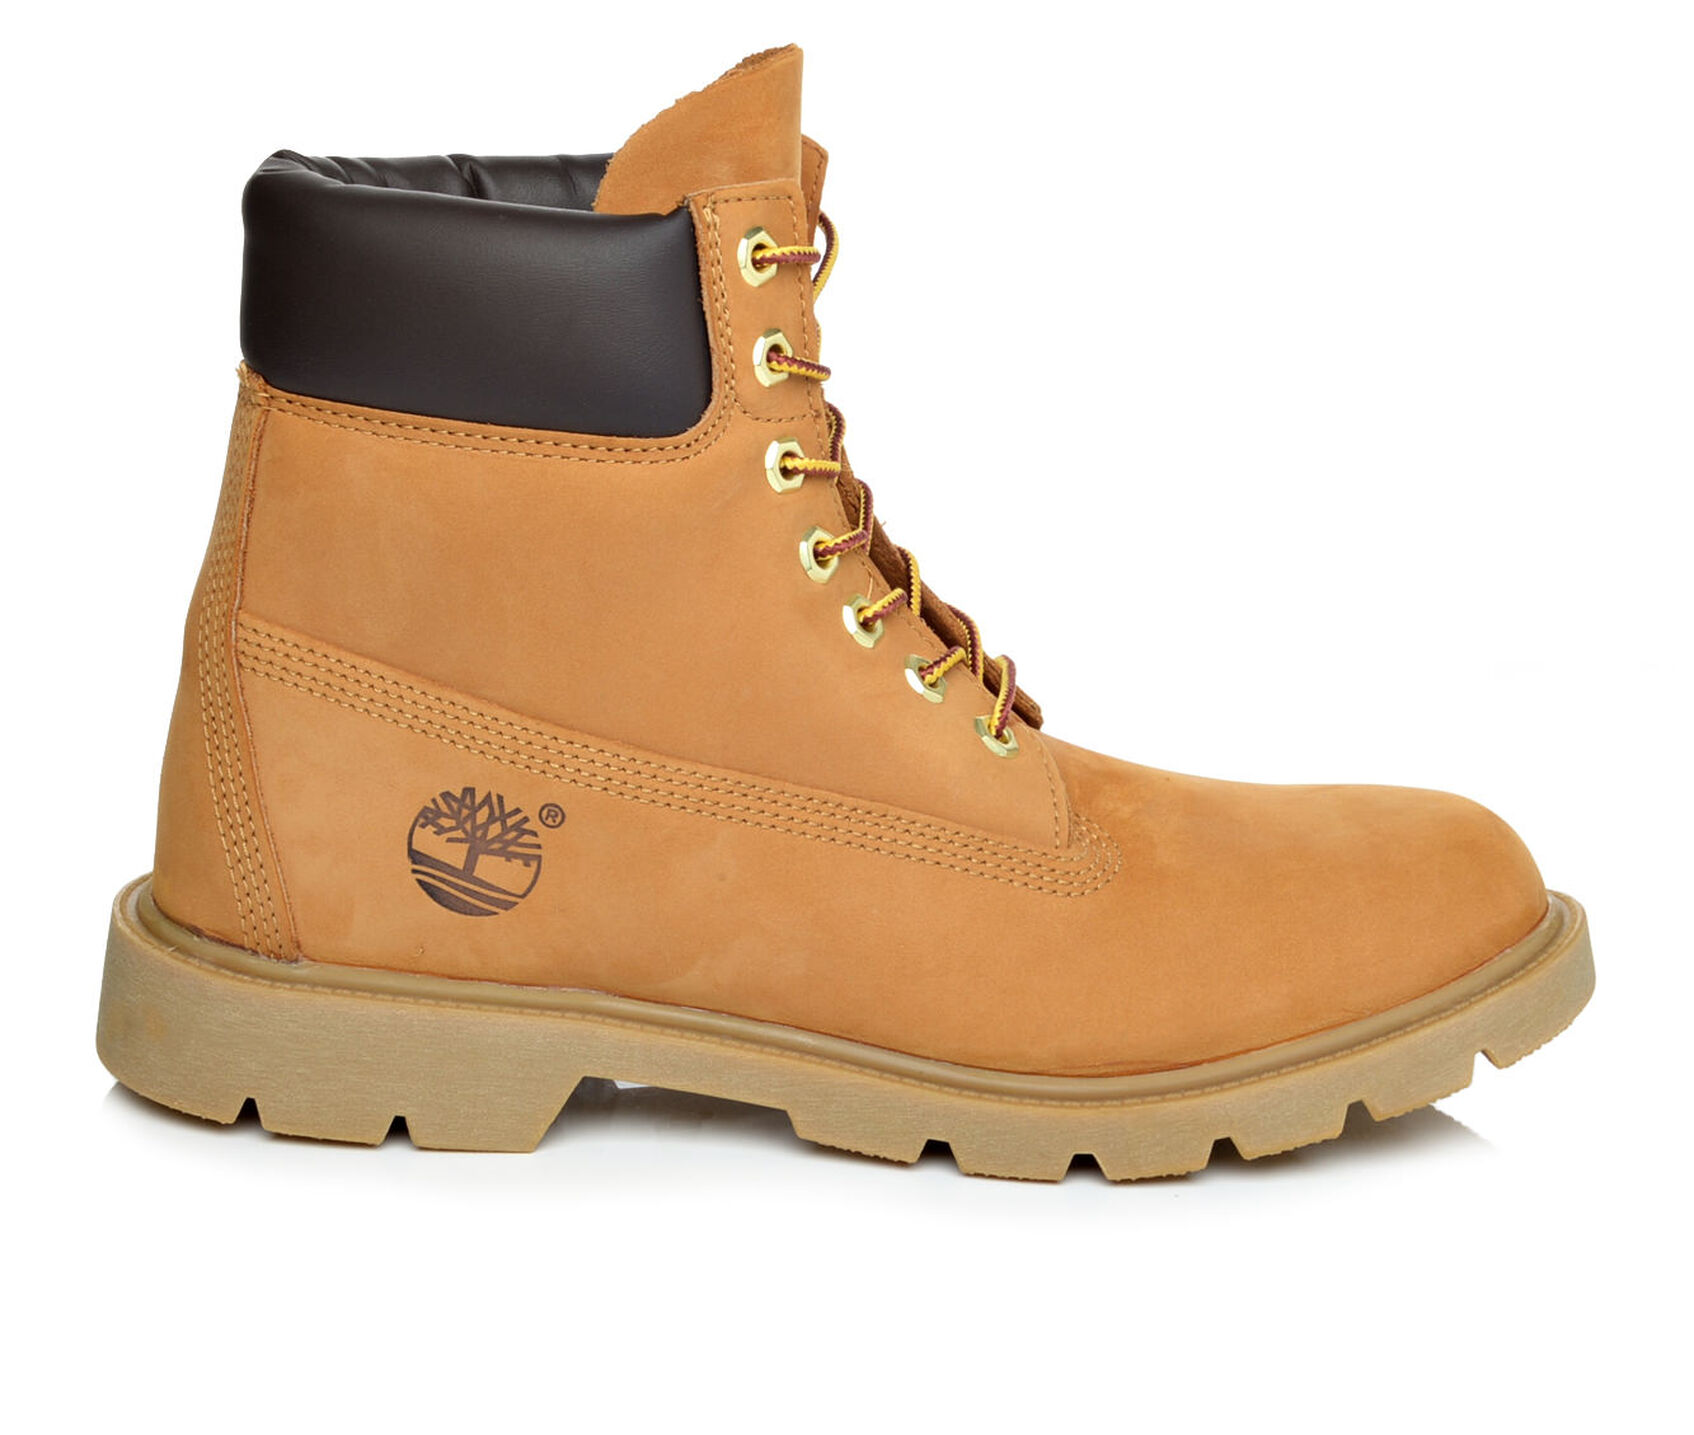 Girls' Boots from marloslash.ml Whether she likes colorful rain boots, fringe moccasins, tough combat pairs, riding gear, or cowboy styles, marloslash.ml offers all these styles of girls' boots and many more.